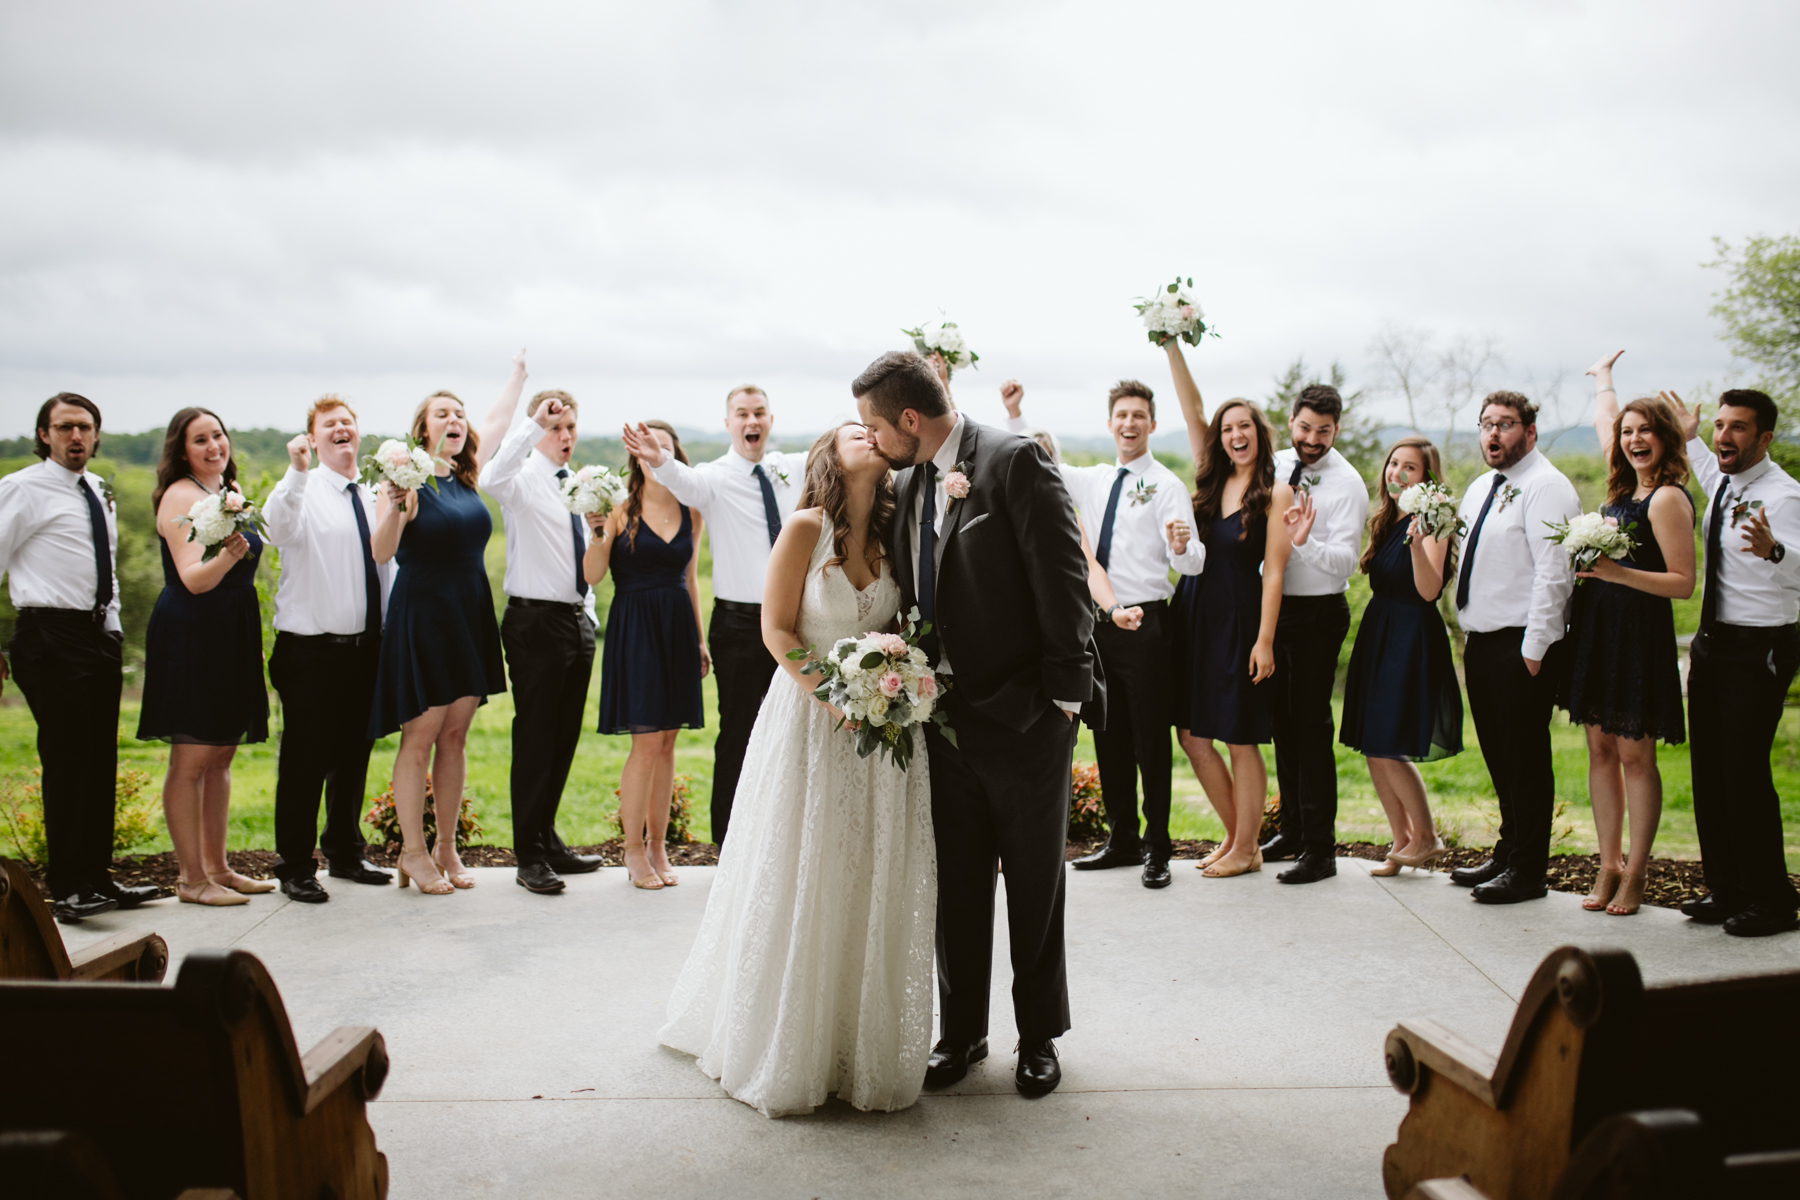 Cloudy bridal party photos at a A Rustic Wedding at Barn in the Bend in Nashville, Tennessee